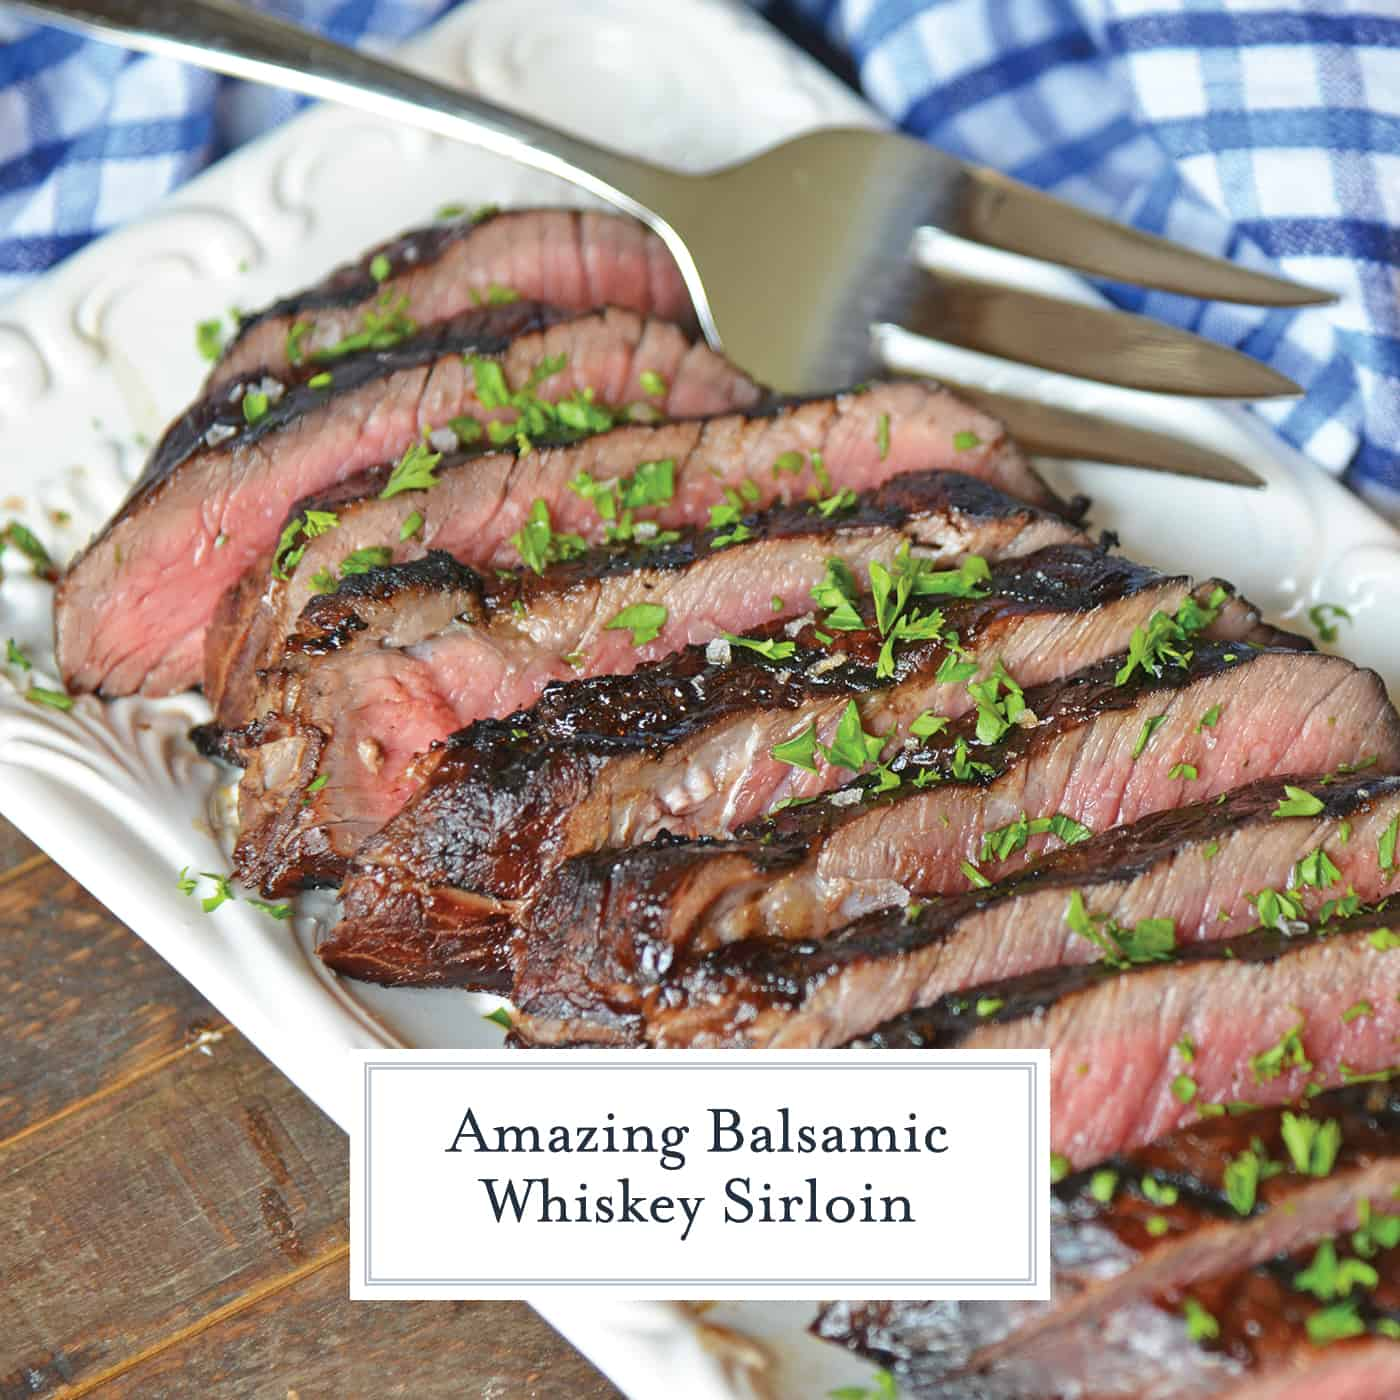 In just under 30 minutes, this tender and juicy Balsamic Whiskey Sirloin is grilled and ready to eat. What could be better?